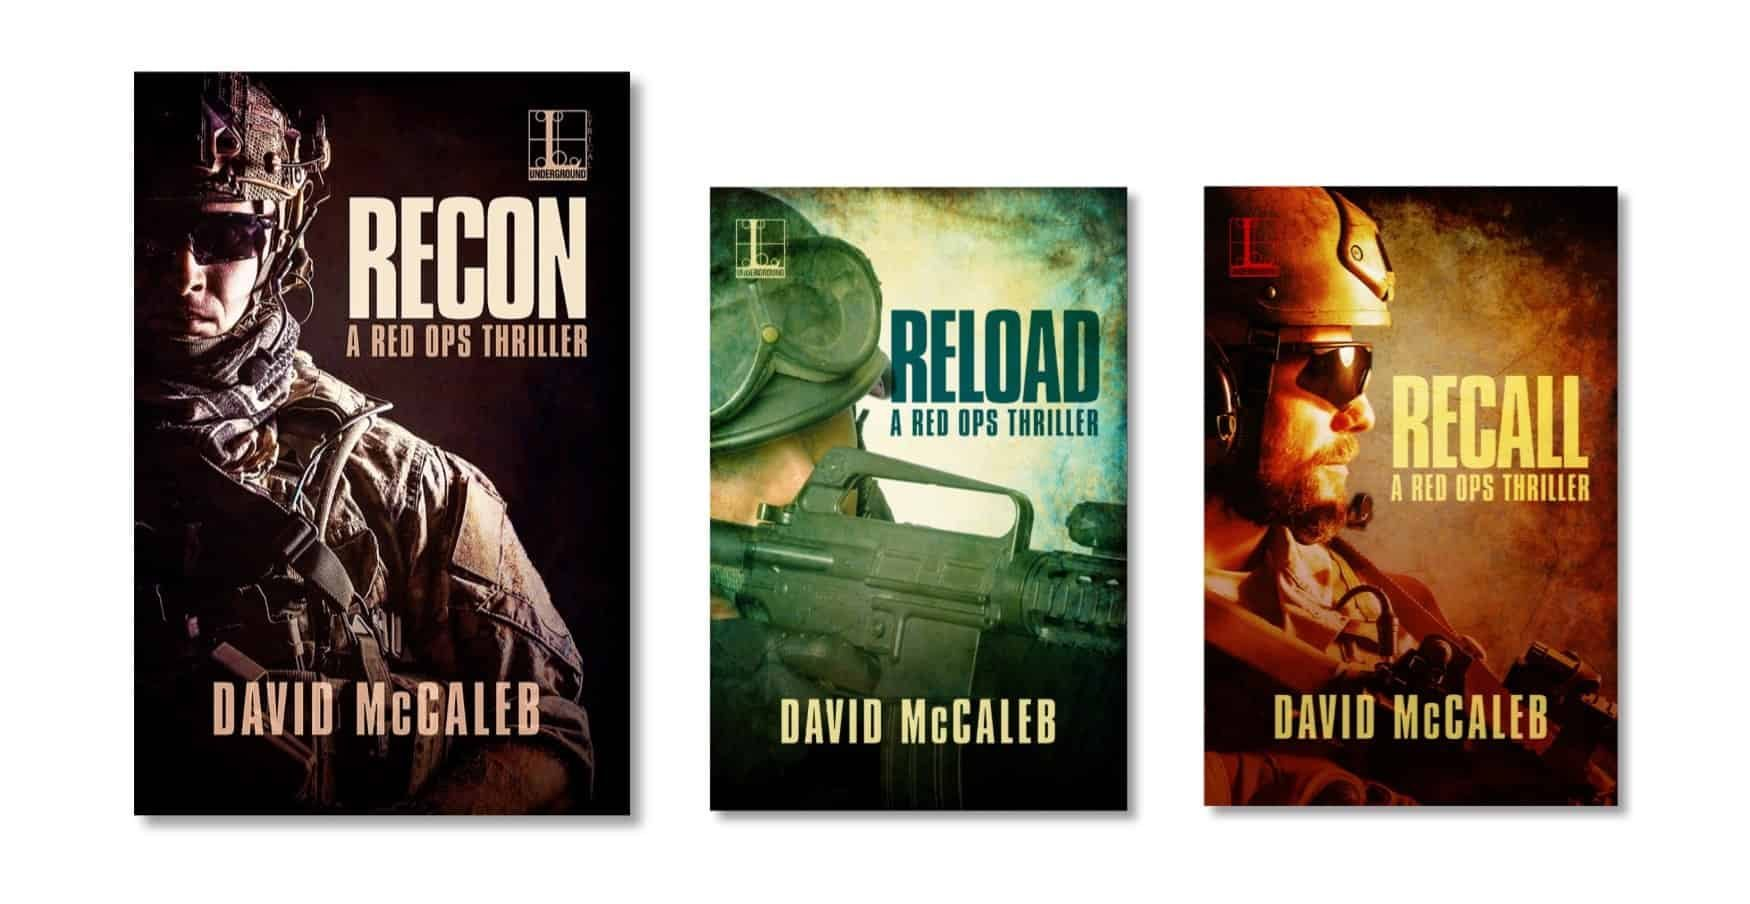 RECON book release, covers of three books in the RED OPS thriller series.